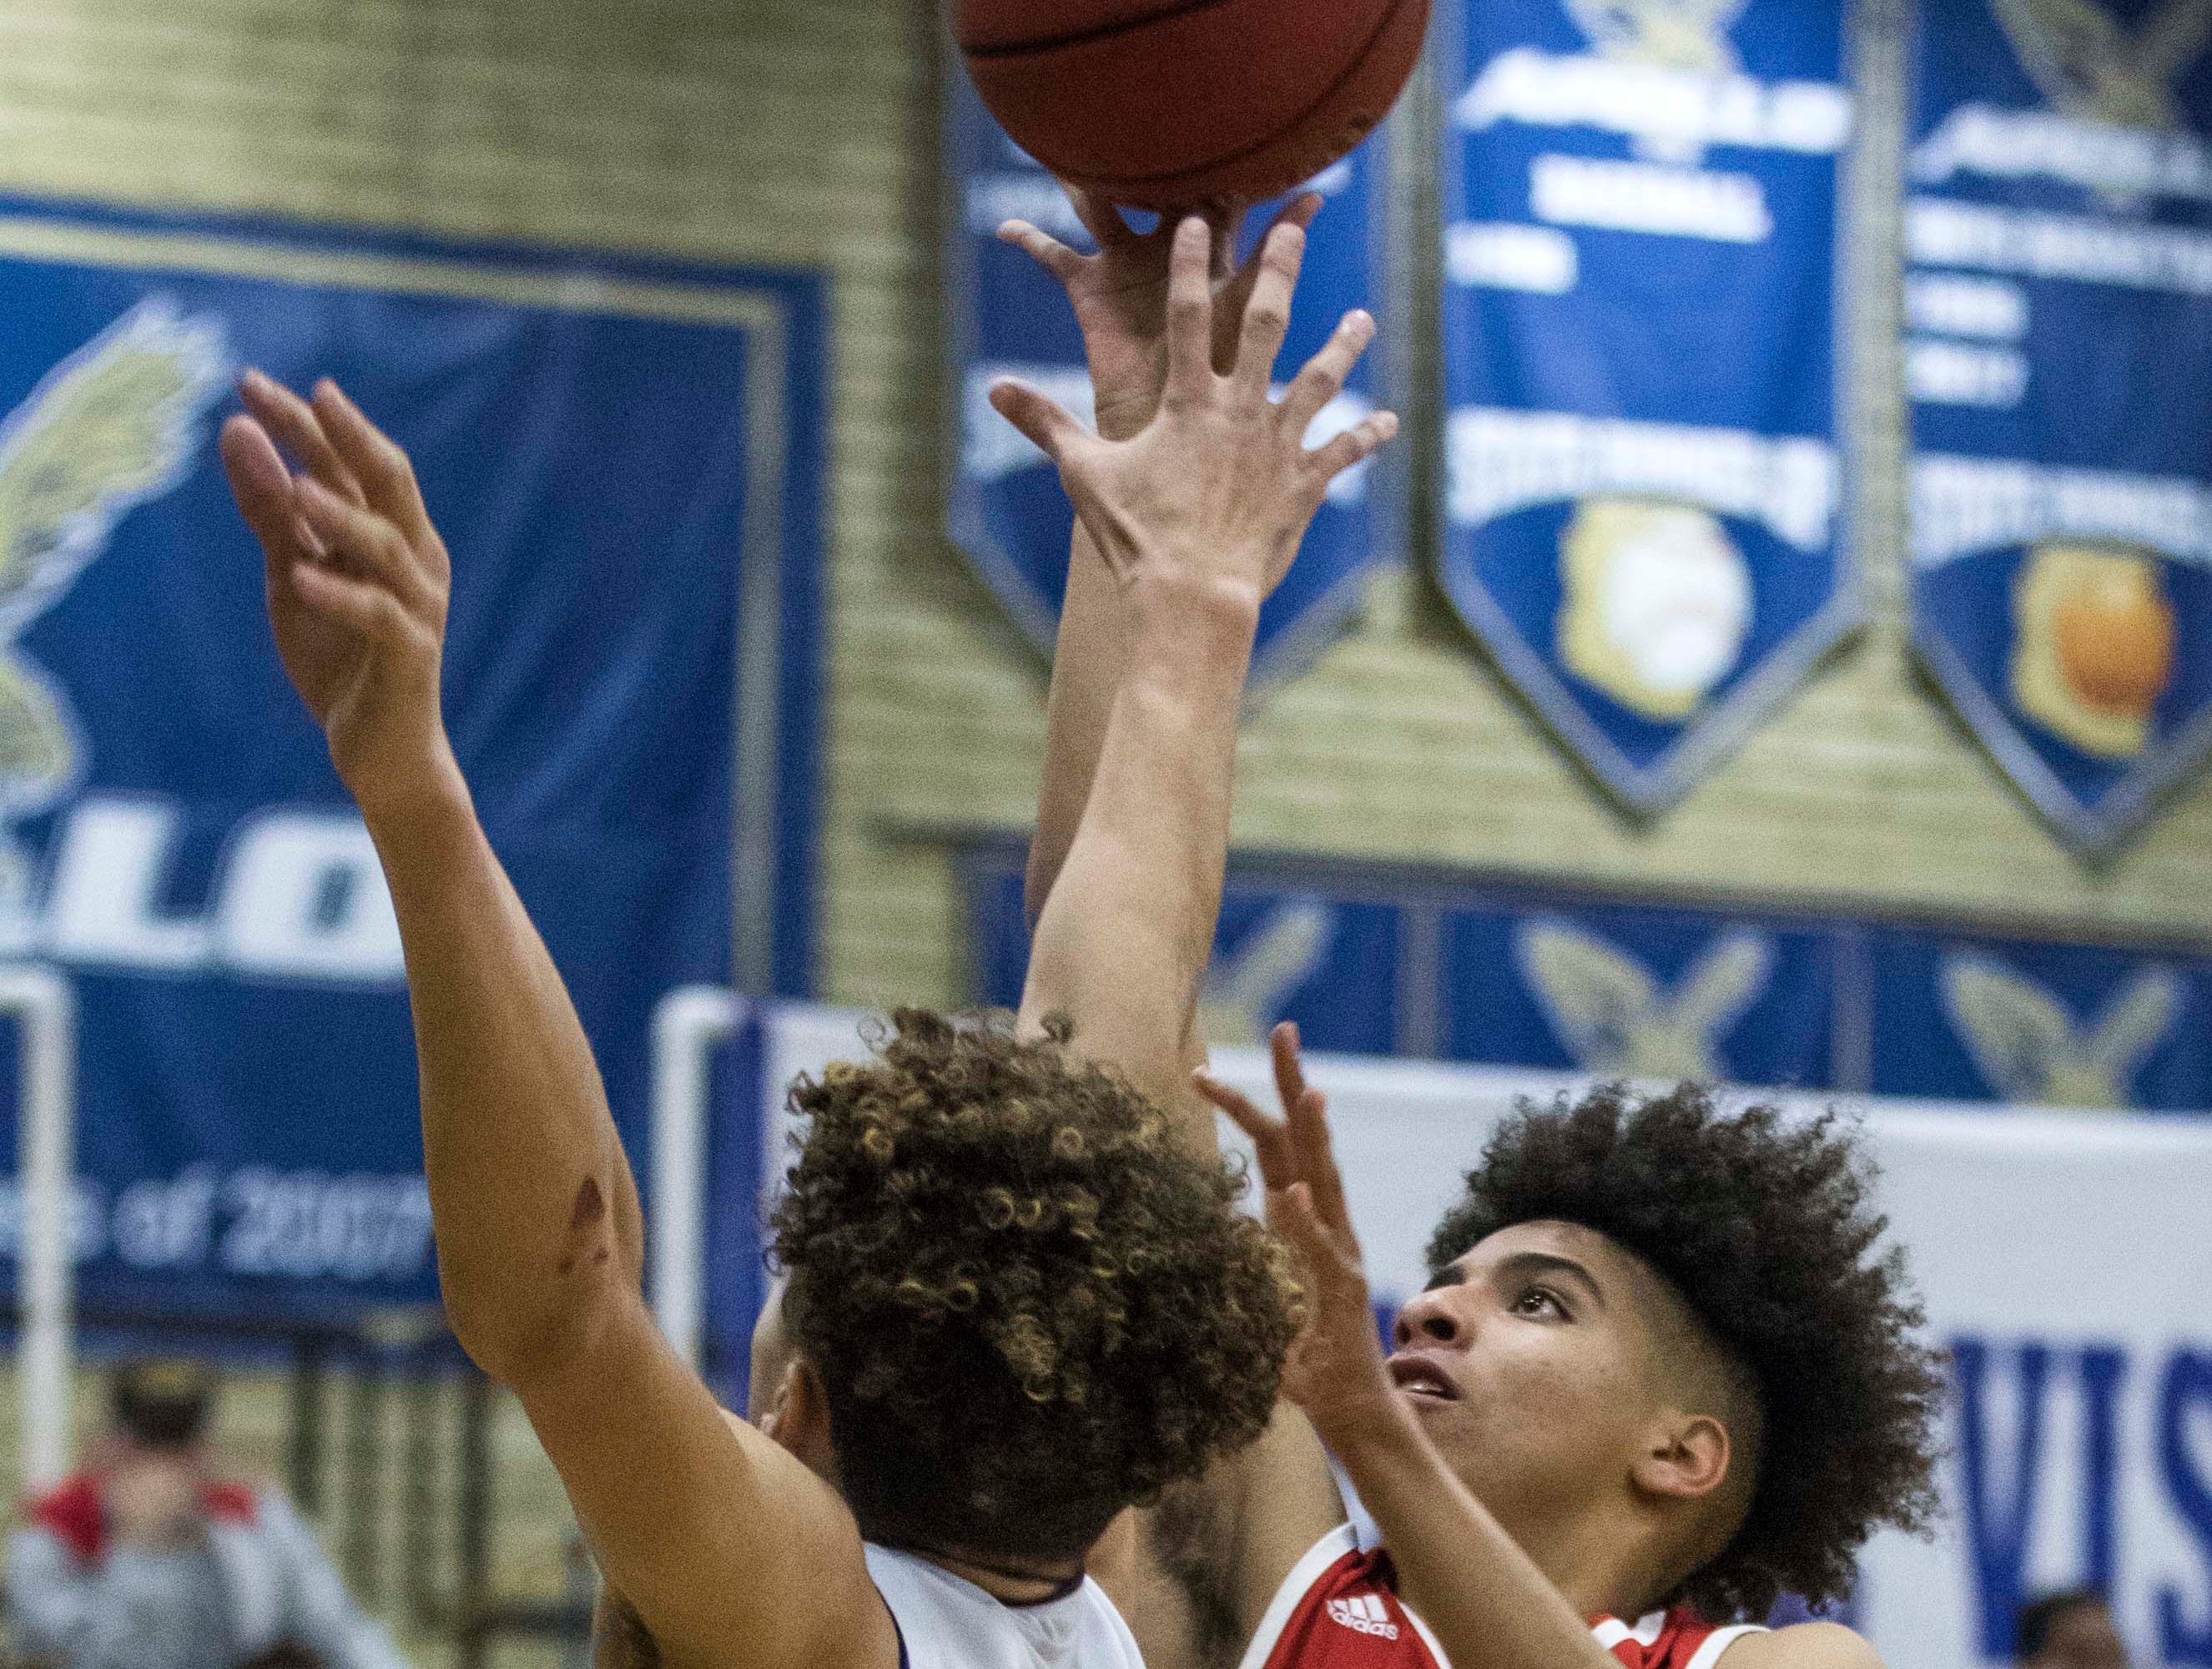 South Mountain's Fontane RossÊ(2) puts up a shot against Apollo's Jaylen Glover (4) during the first half of their game in Phoenix, Wednesday, Feb .13,  2019.